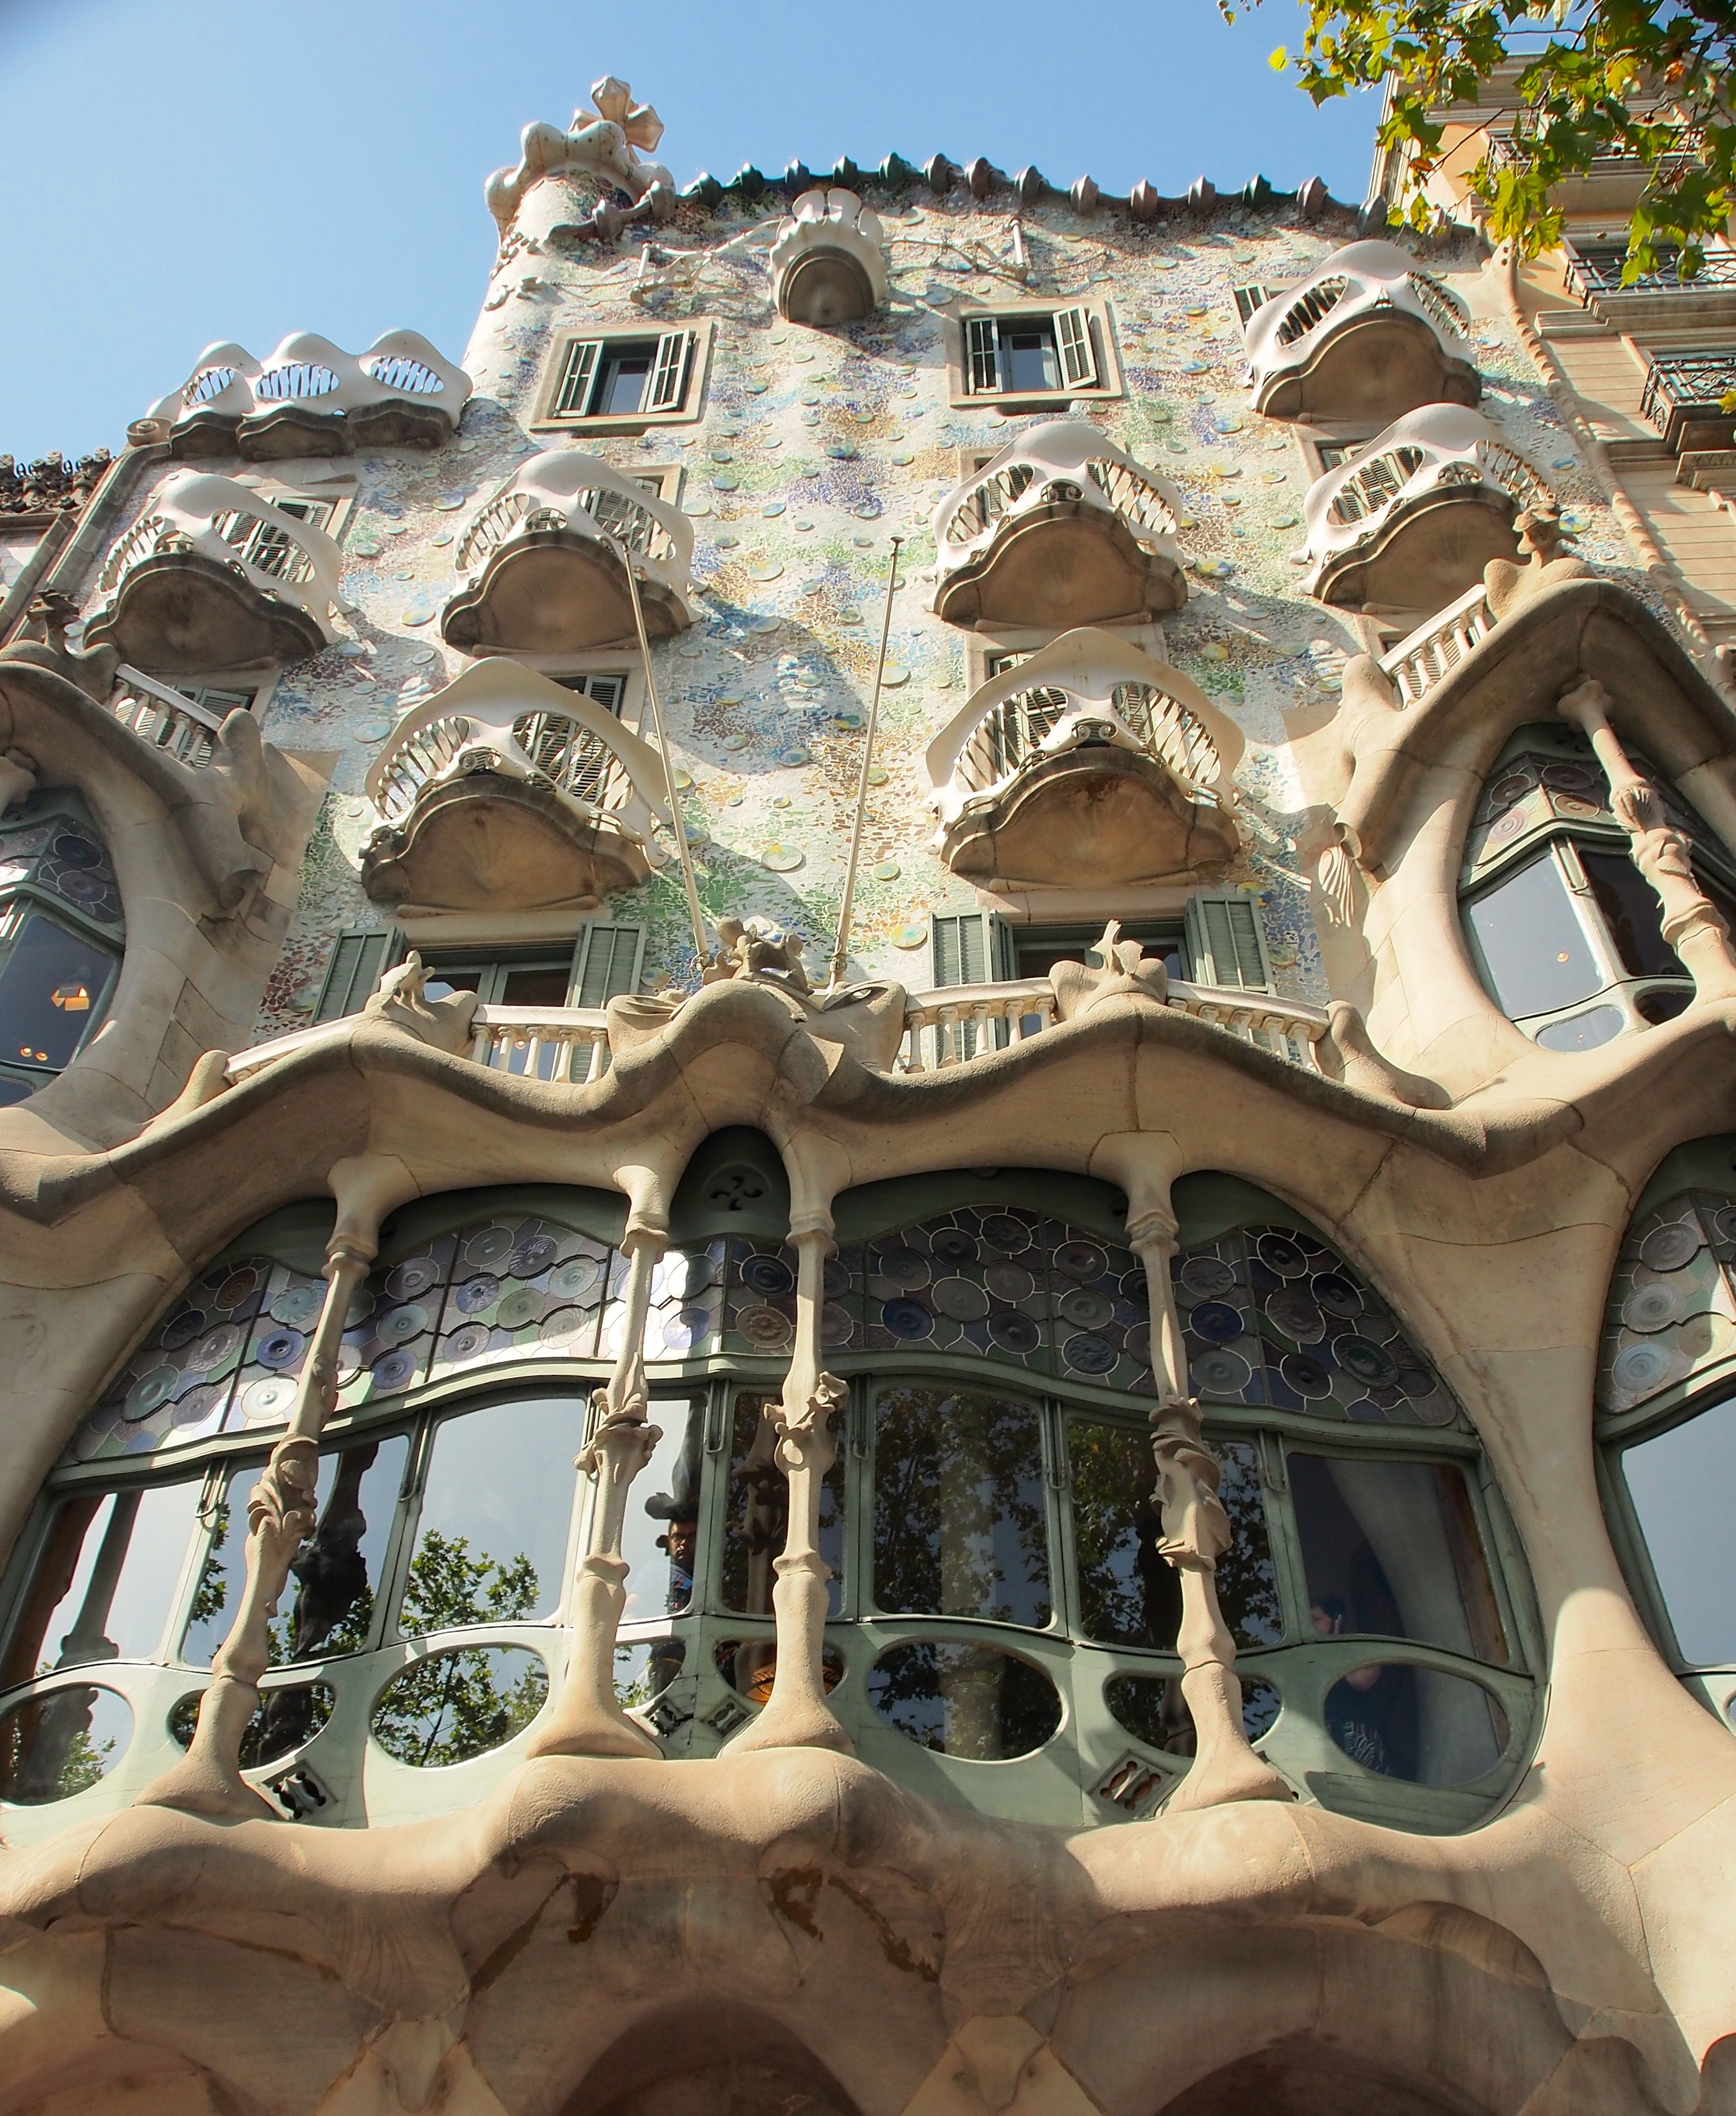 Embrace the unusual. Extraordinary objects deliver you to fantasy lands and strange cultures that help you leave the world behind. (In Barcelona, the weird and the wonderful poke out of nooks and crannies everywhere -- just when you think you've seen it all, there's another one!) #PrincessCruises #travel